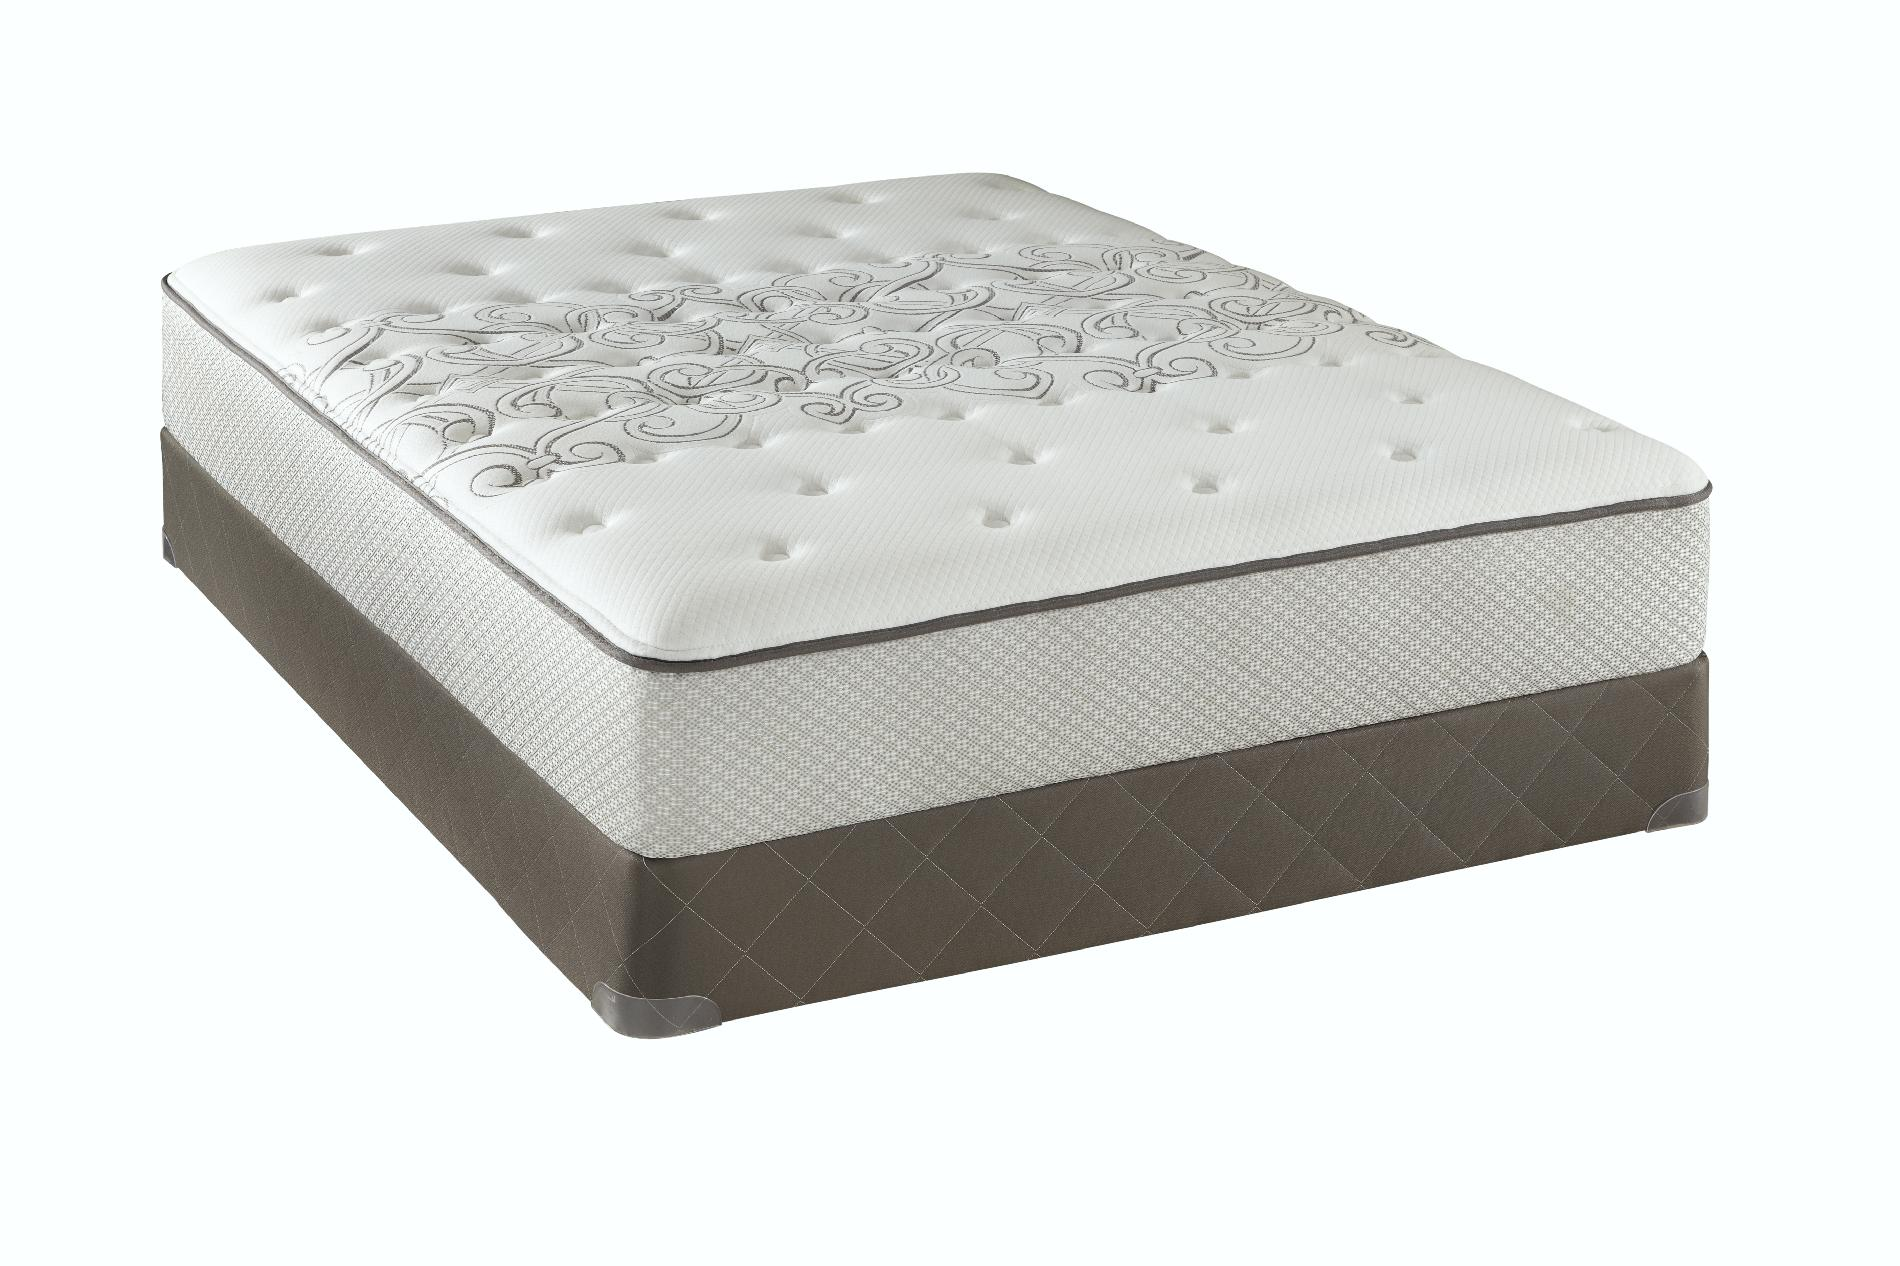 Sealy Posturepedic Cookshire Ti2, Firm, Full Extra Long Mattress Only